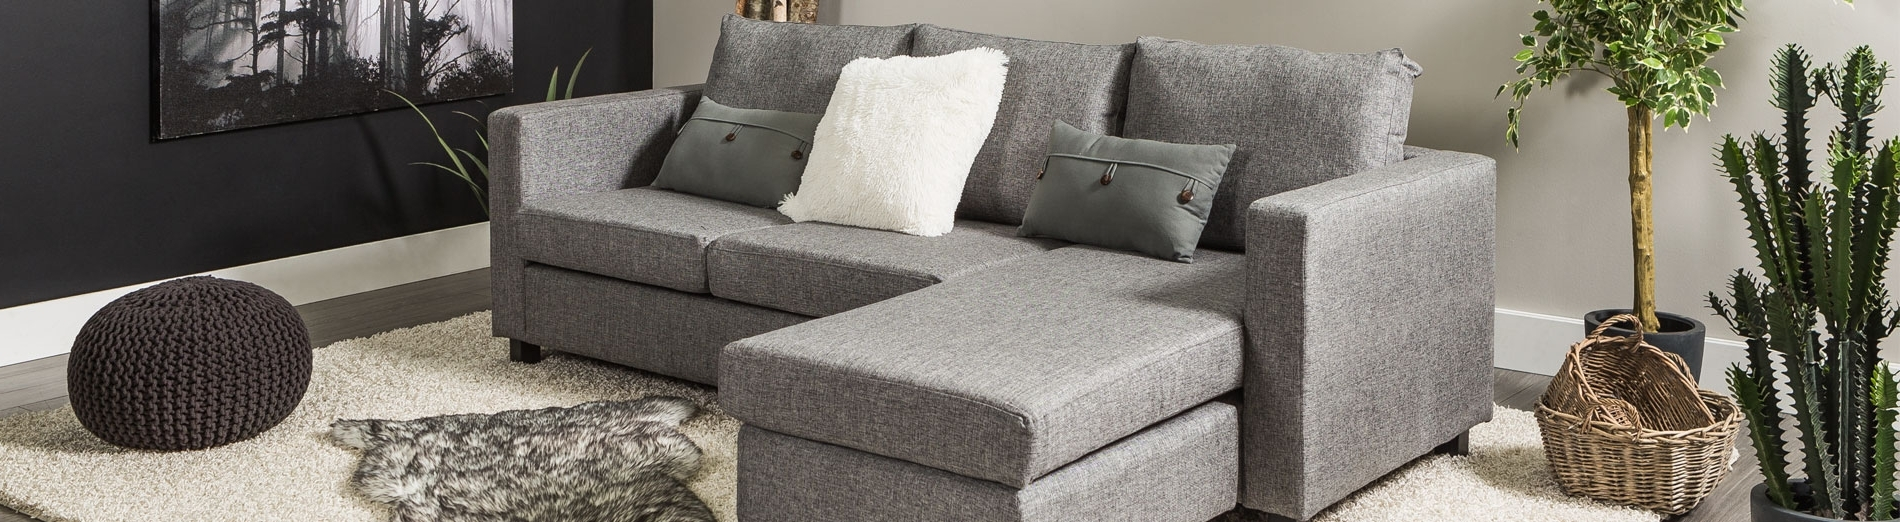 Furniture With Regard To Jysk Sectional Sofas (View 7 of 20)